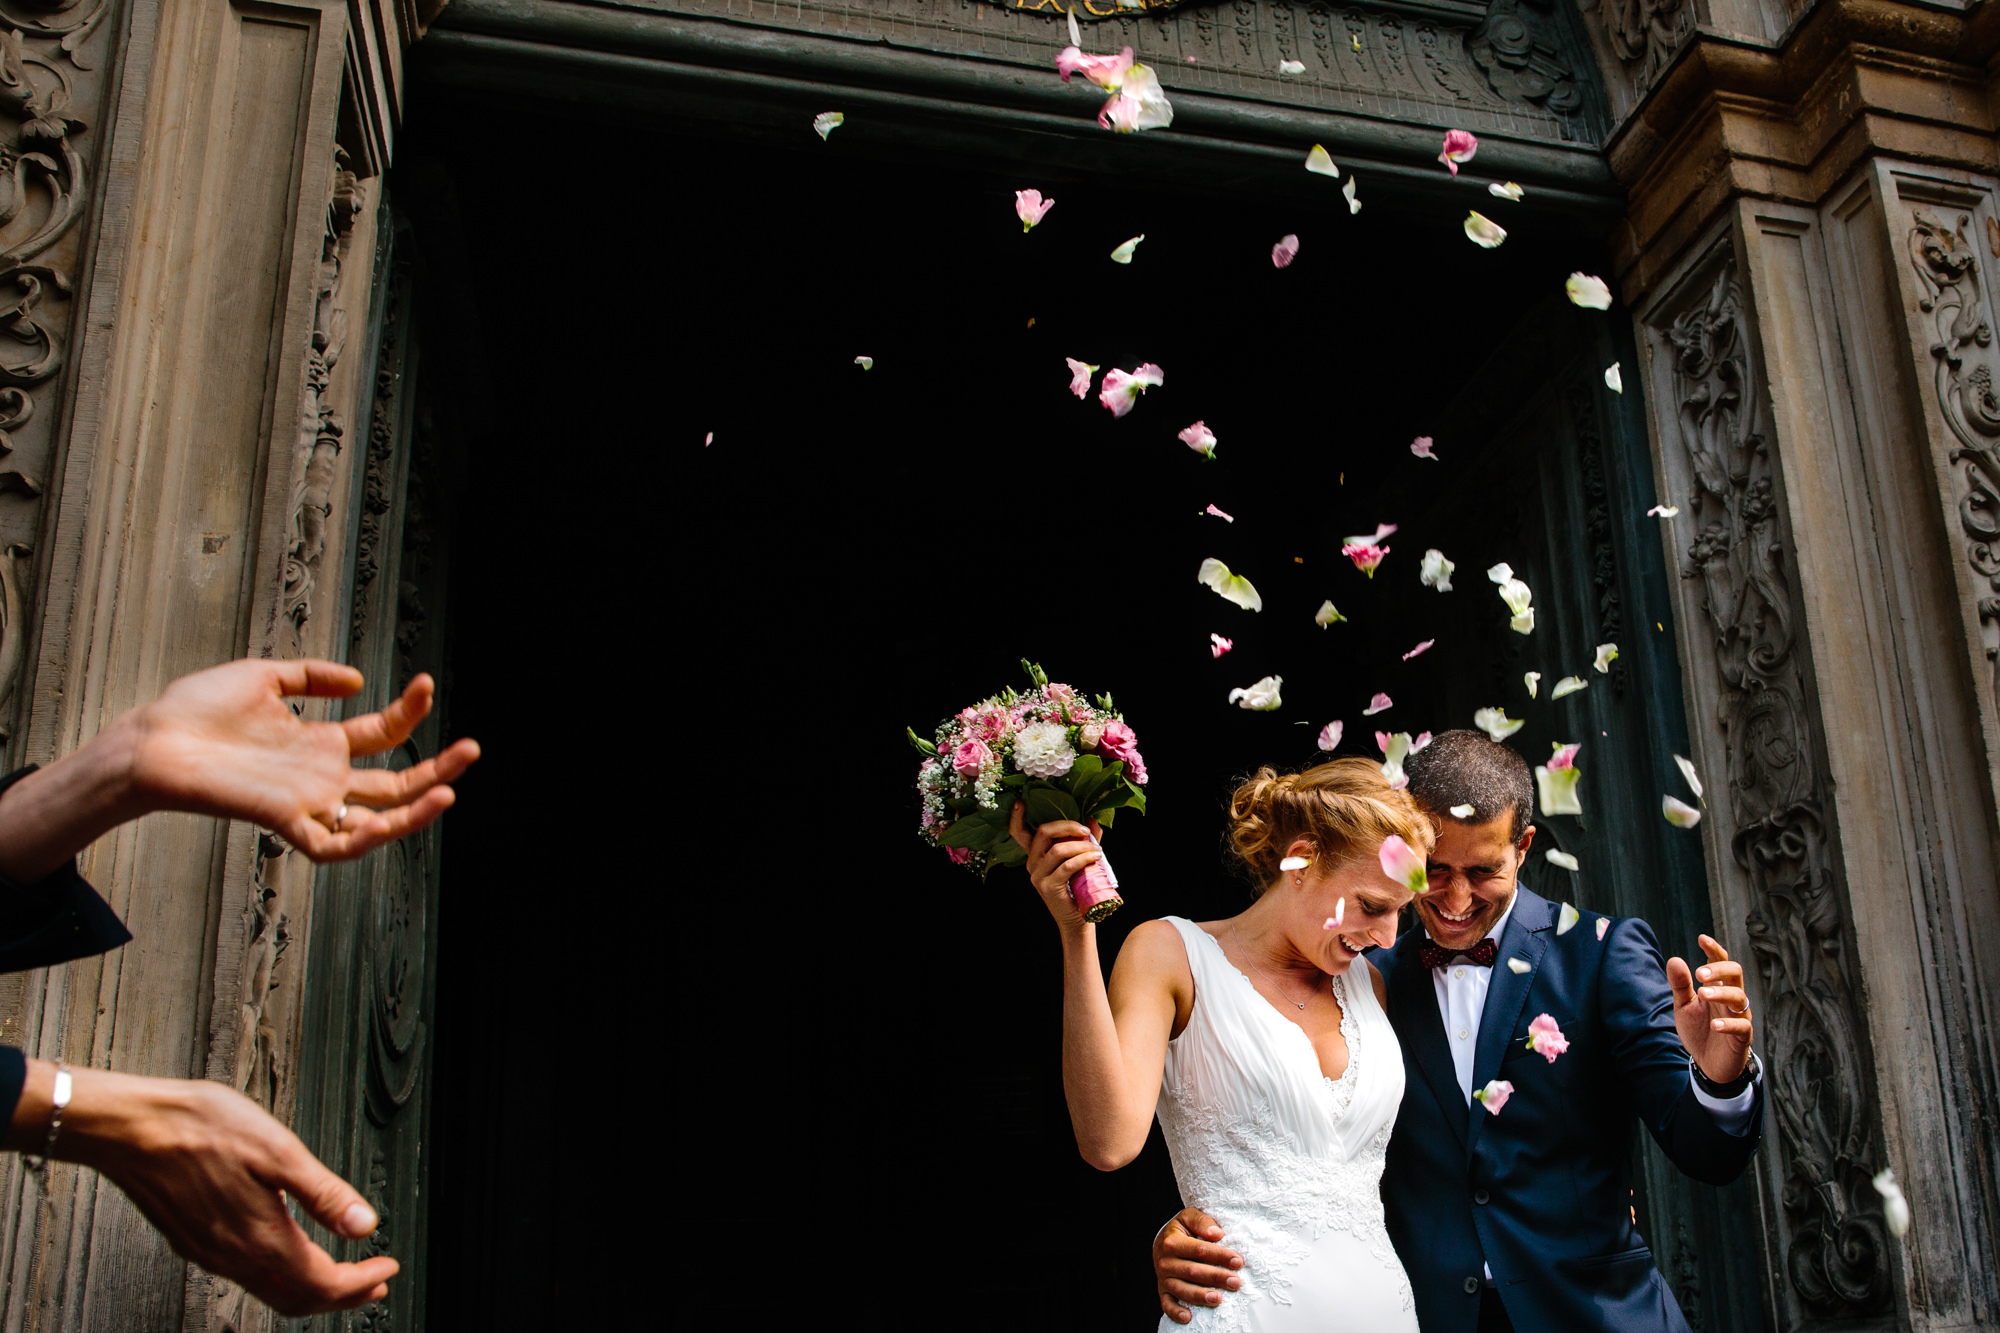 Guests throw rose petals at just married couple exiting church doors, photo by Yves Schepers, Belgium wedding photographer